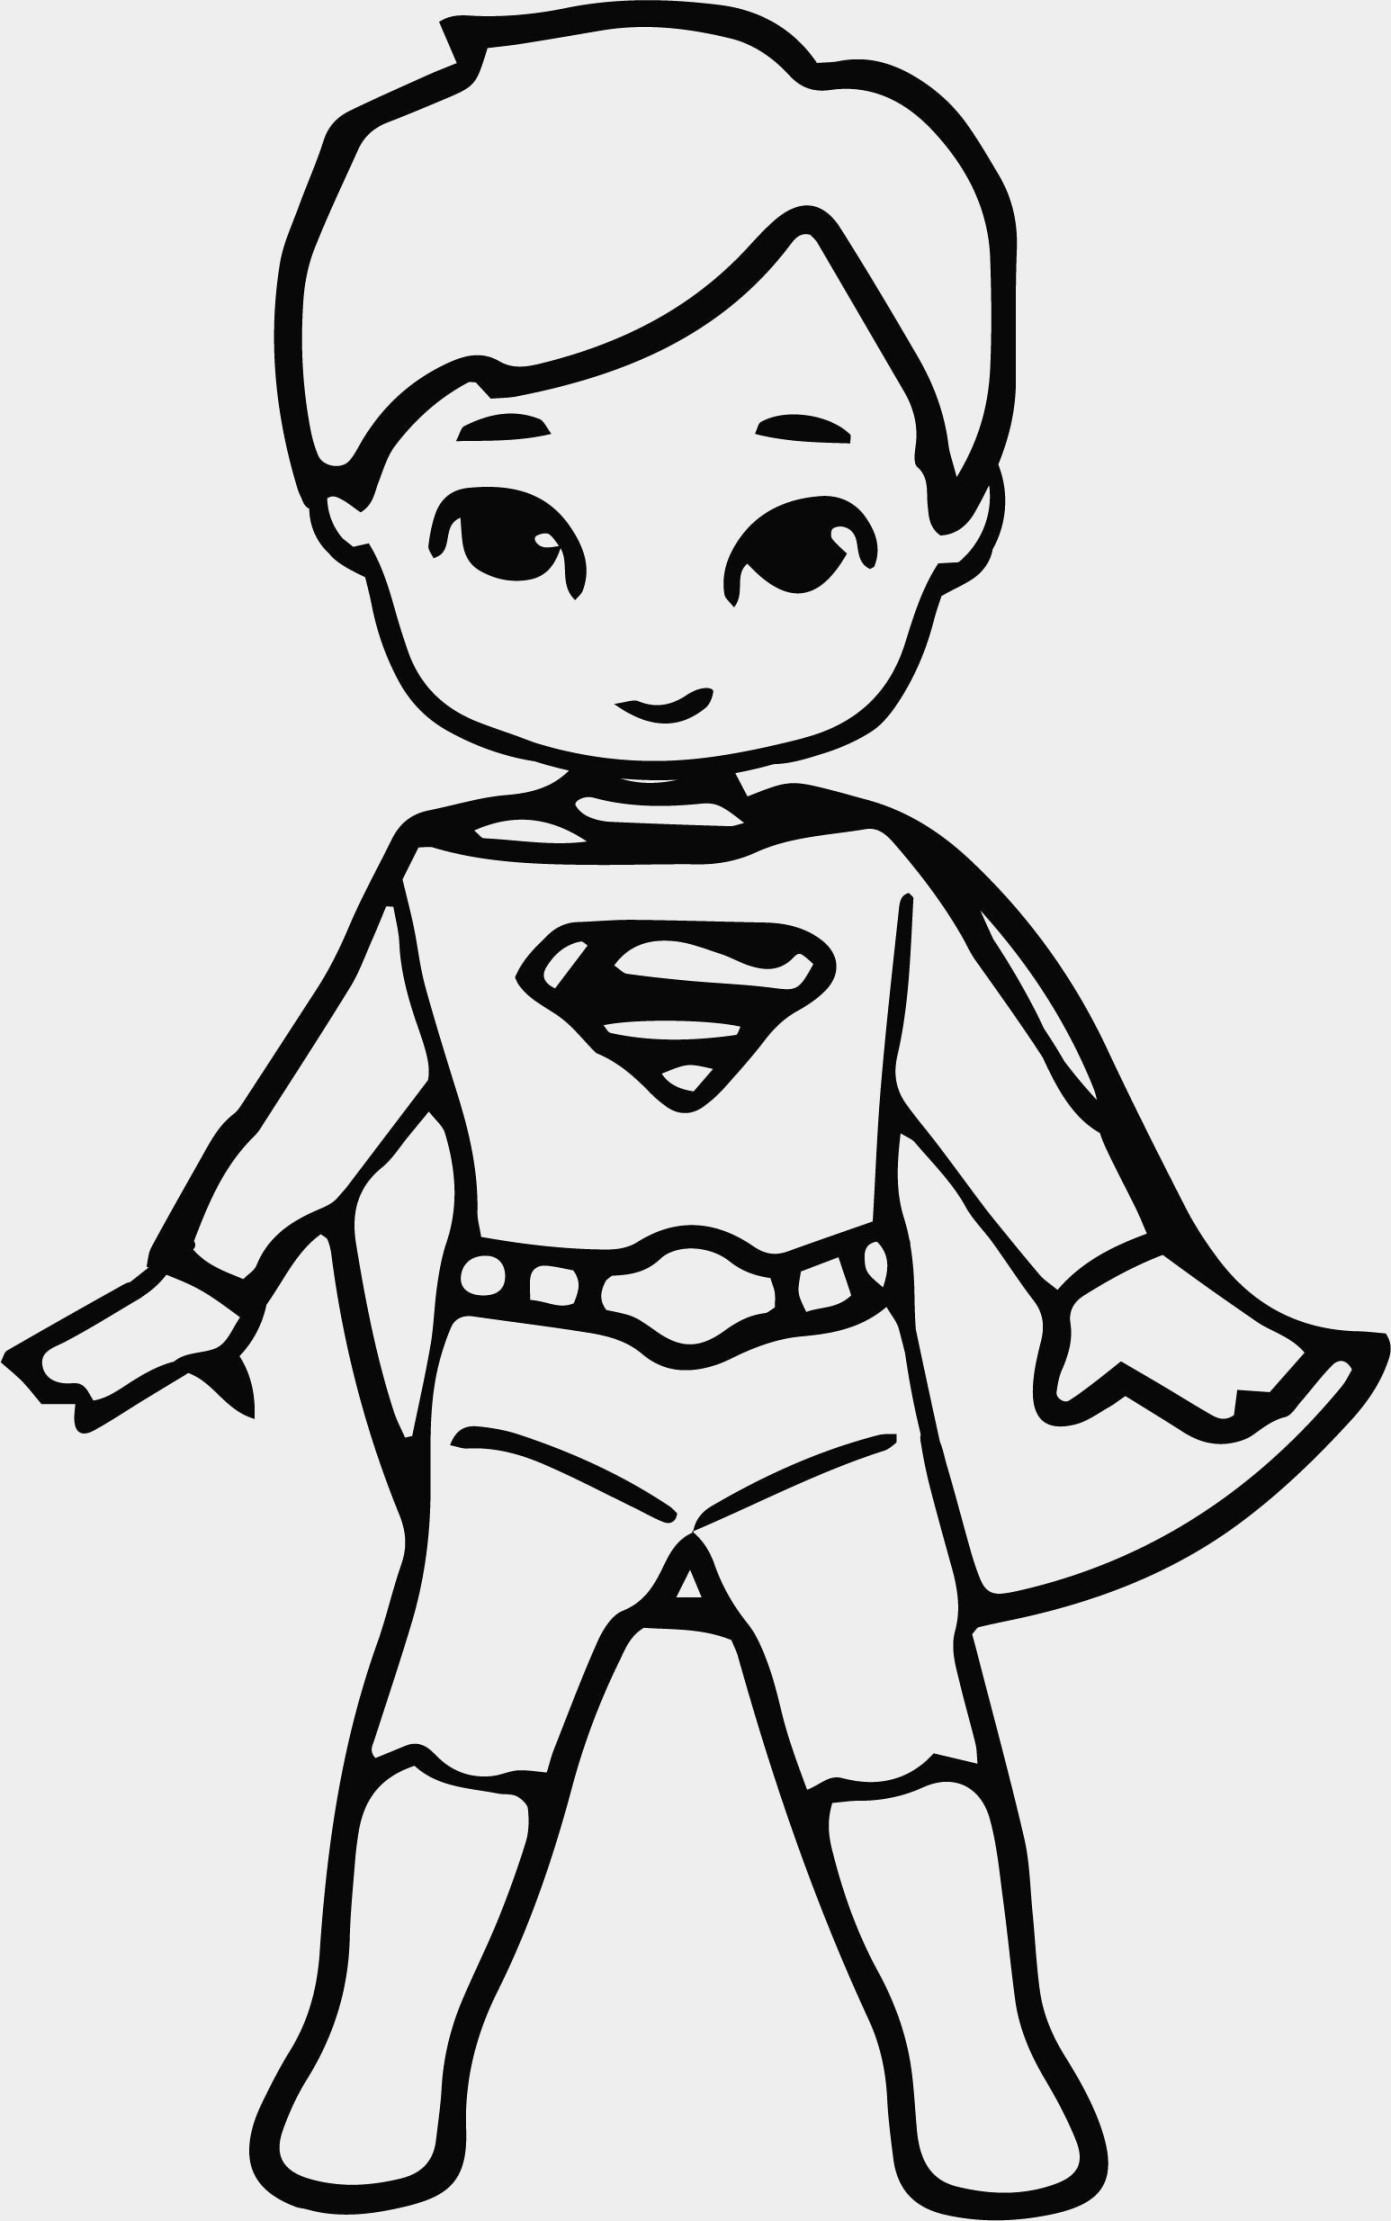 superman cartoon pictures for colouring get this printable superman coloring pages 16529 for superman pictures colouring cartoon